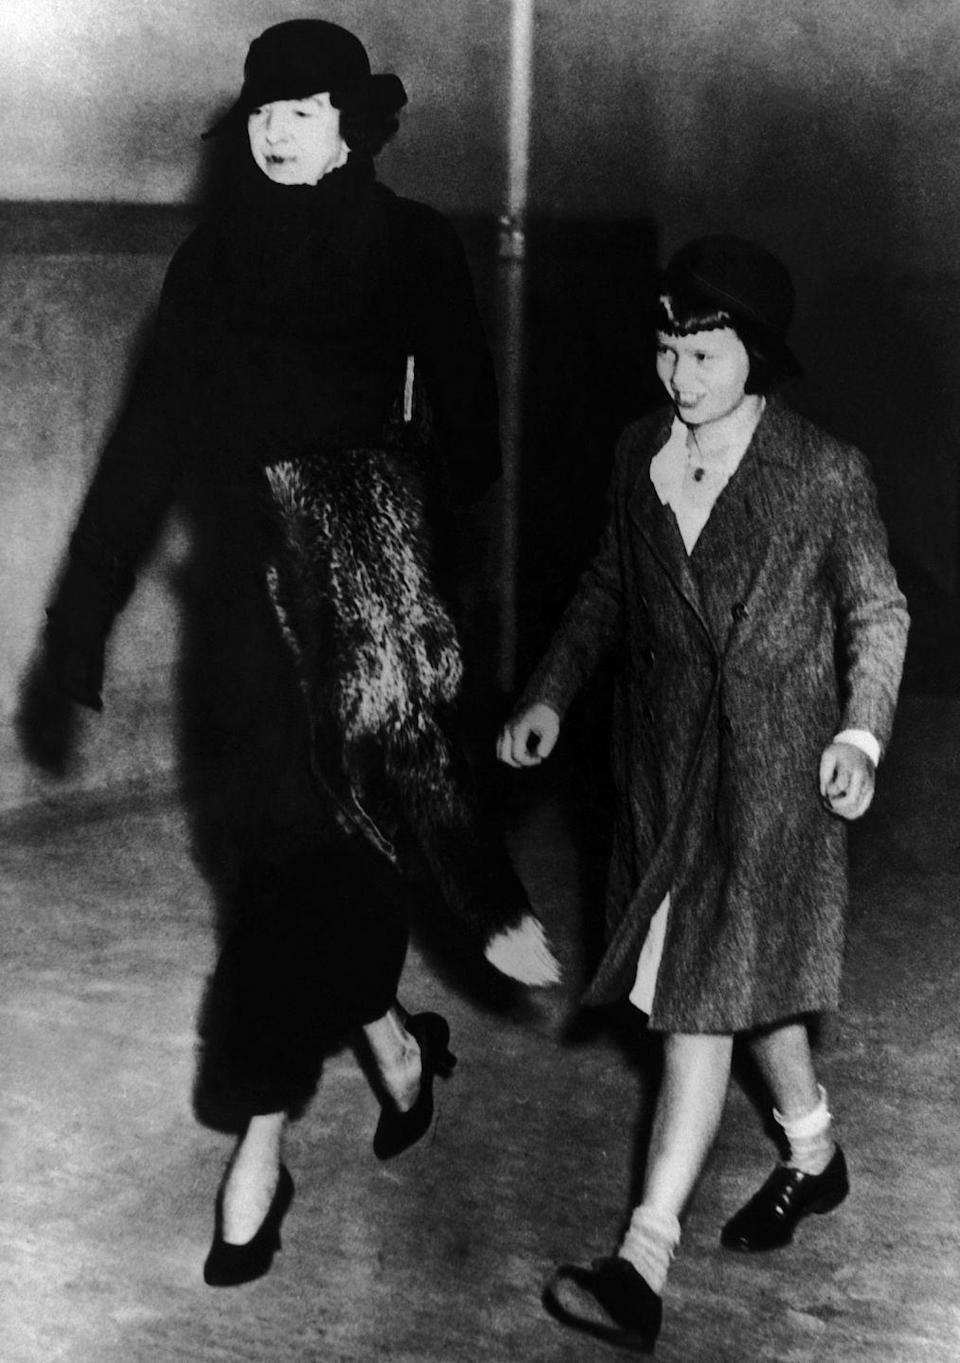 """<p>Vanderbilt and her aunt, Gertrude Vanderbilt-Whitney, arrive at a courthouse in New York for a <a href=""""http://law.jrank.org/pages/2927/Gloria-Vanderbilt-Custody-Trial-1934--Trial-Century.html"""" rel=""""nofollow noopener"""" target=""""_blank"""" data-ylk=""""slk:trial"""" class=""""link rapid-noclick-resp"""">trial</a> to determine who would get custody of Gloria.</p>"""